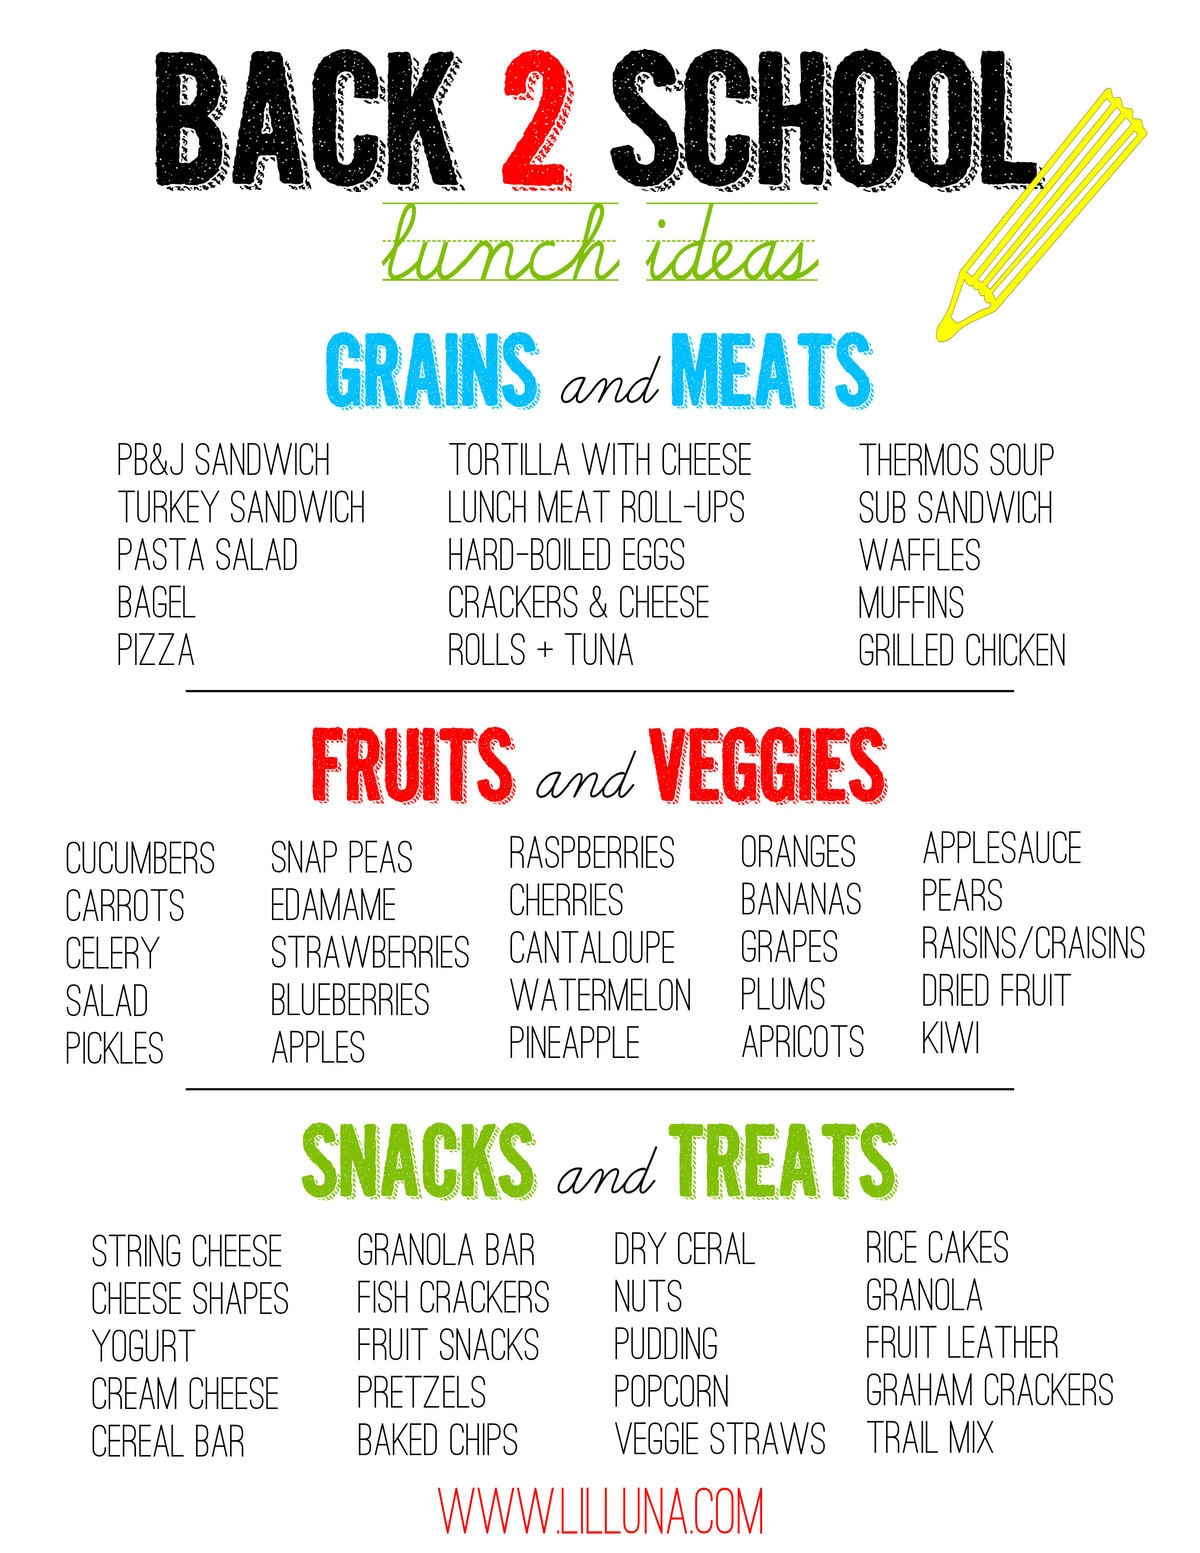 Great Back 2 School Lunch Ideas on { lilluna.com } Great ideas to add variety to those everyday lunches.